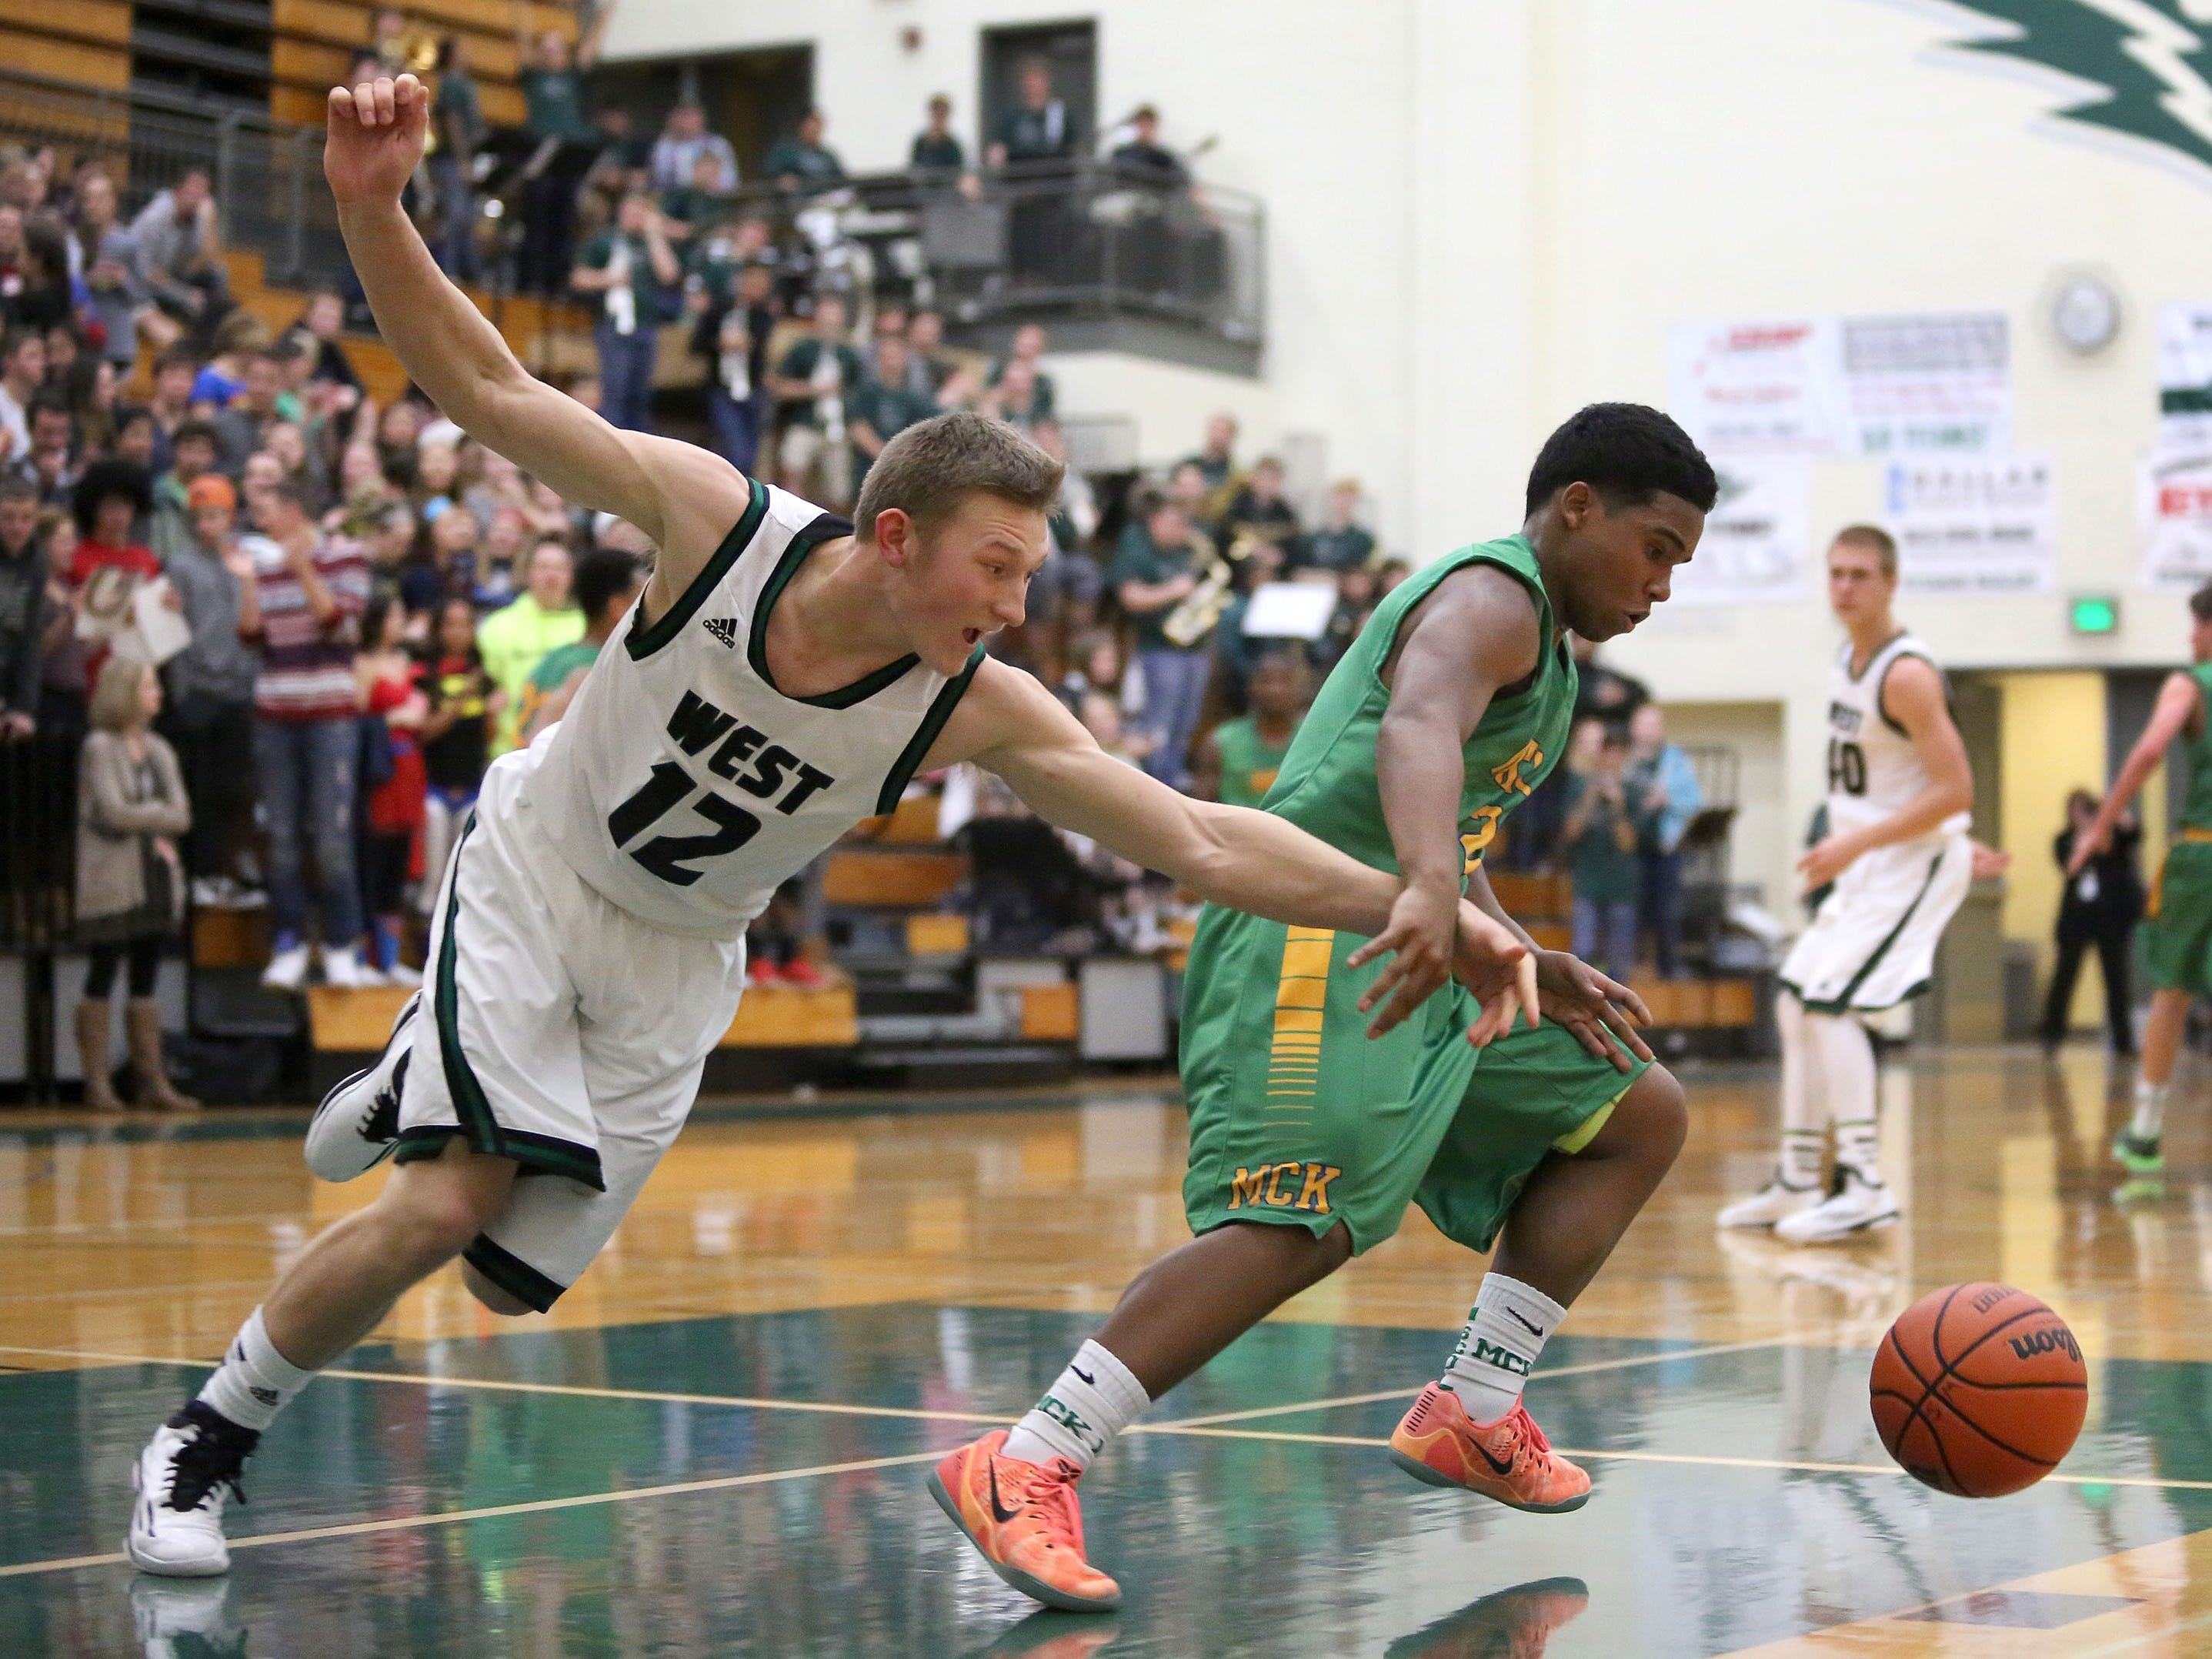 West Salem's Andy Armstrong lunges for the ball as McKay's Demaris Bailey drives down the court during their Greater Valley Conference game on Friday.